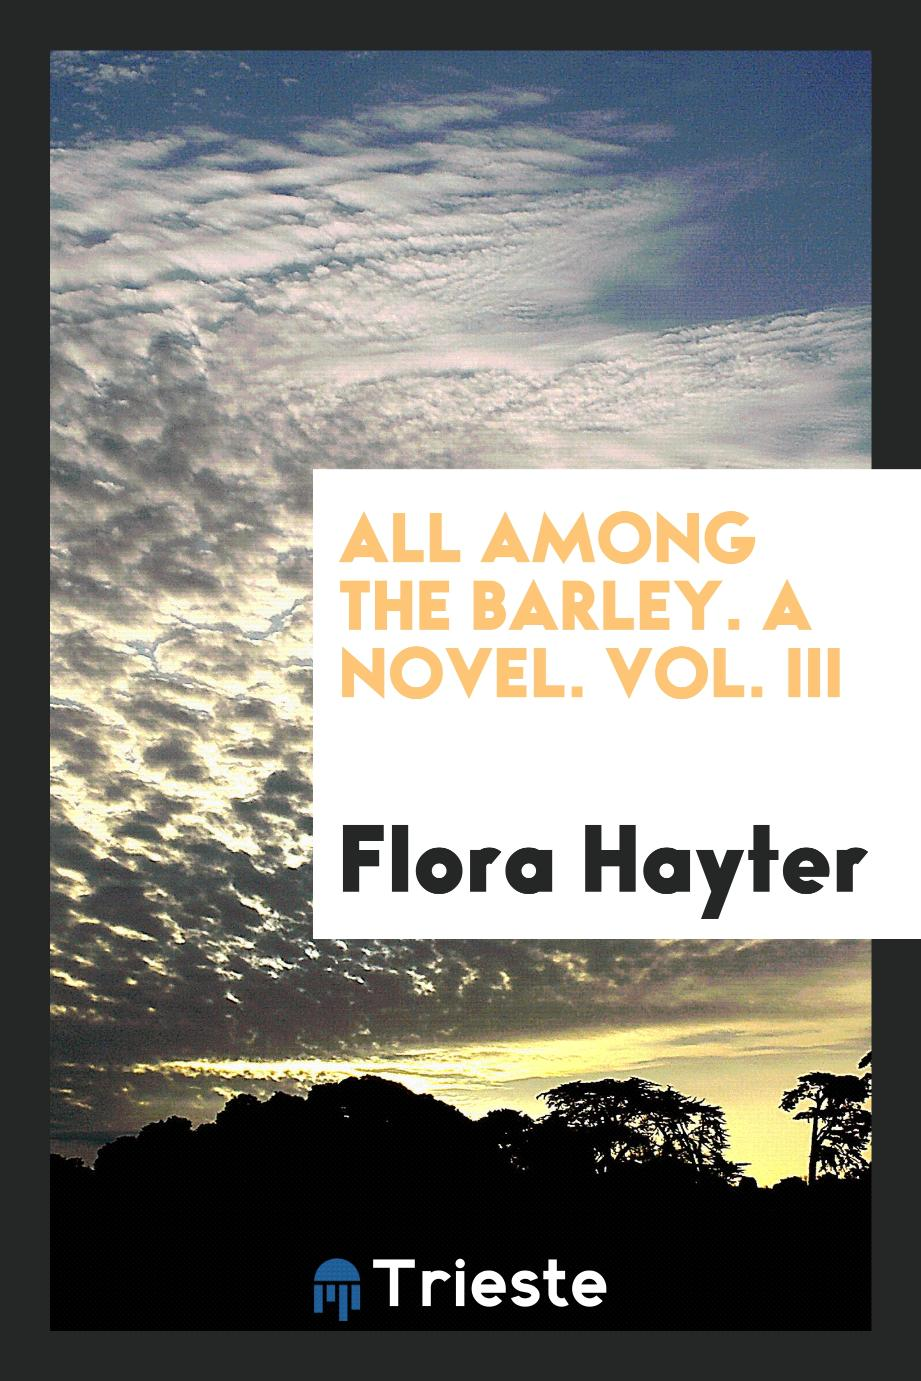 All Among the Barley. A Novel. Vol. III